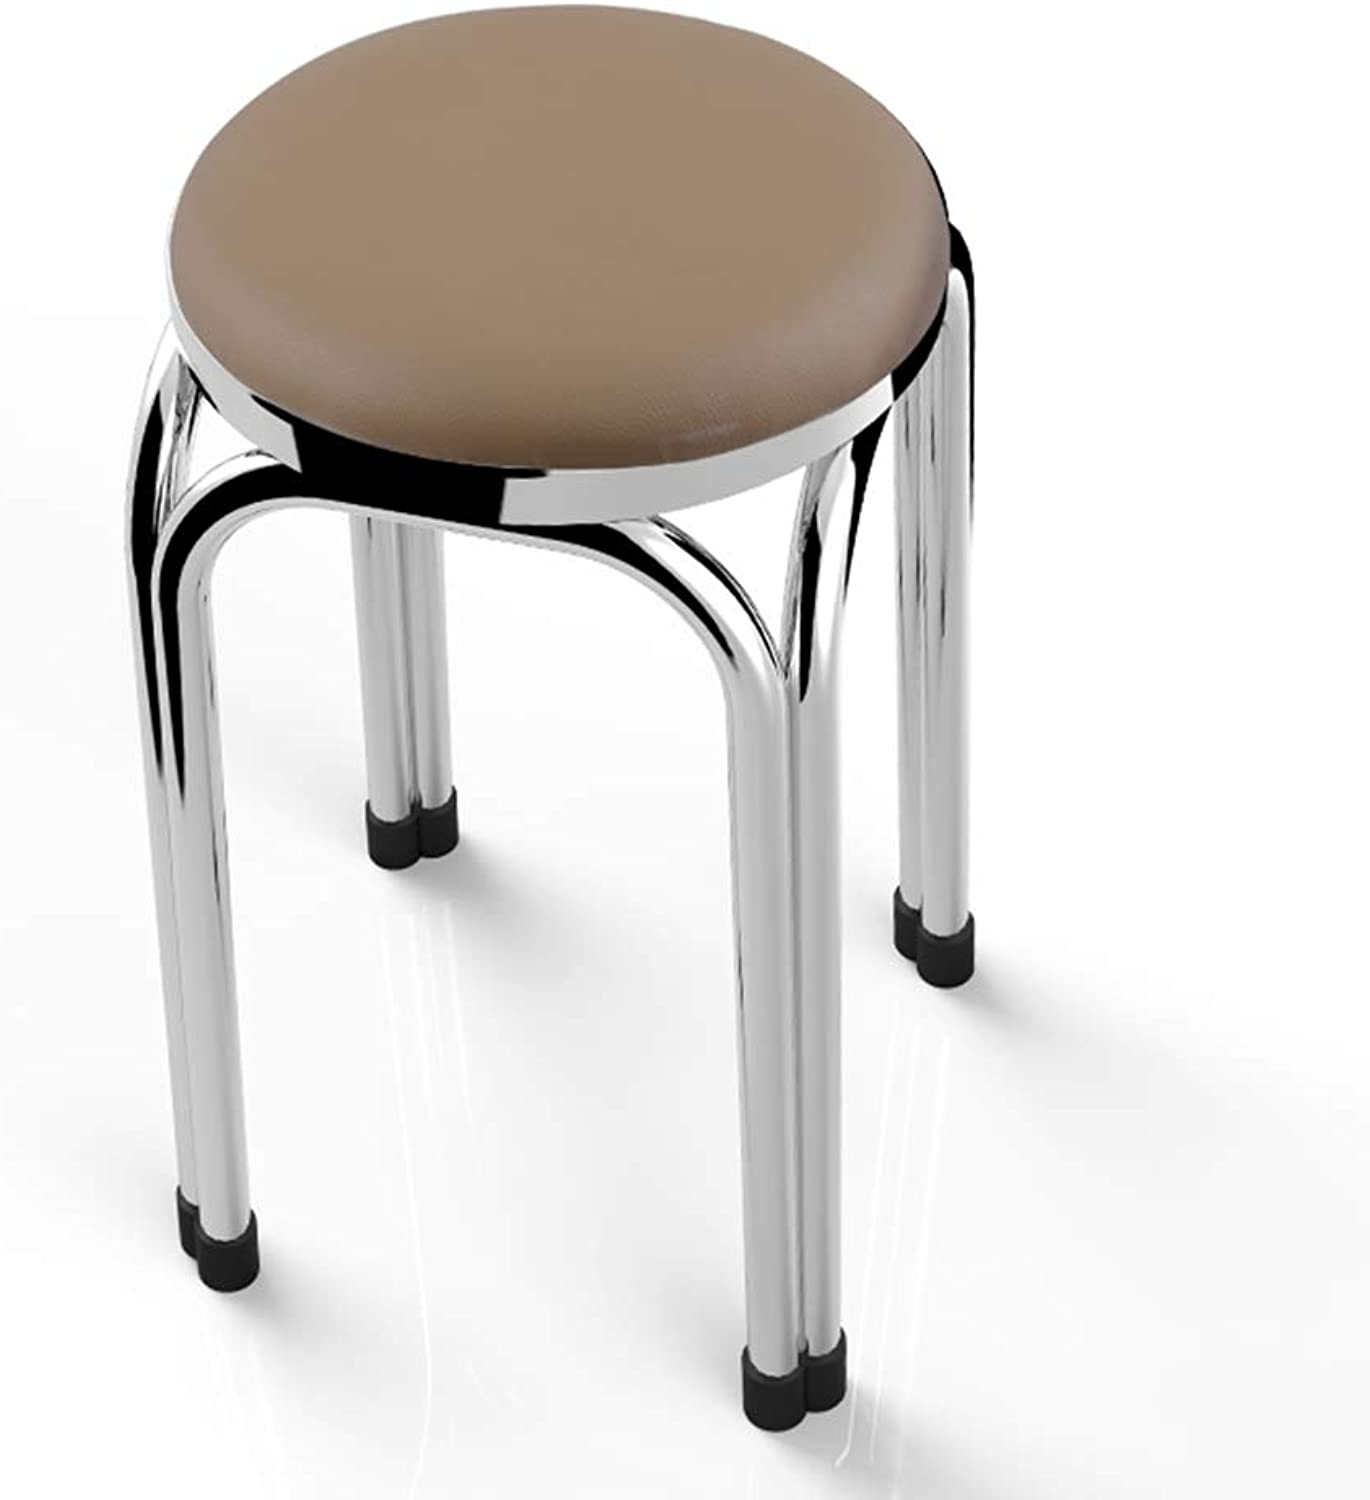 ZXQZ Stainless Steel Folding Soft Stool 47x29cm Household Dining Table Round Stool A Variety of colors Optional (color   C)